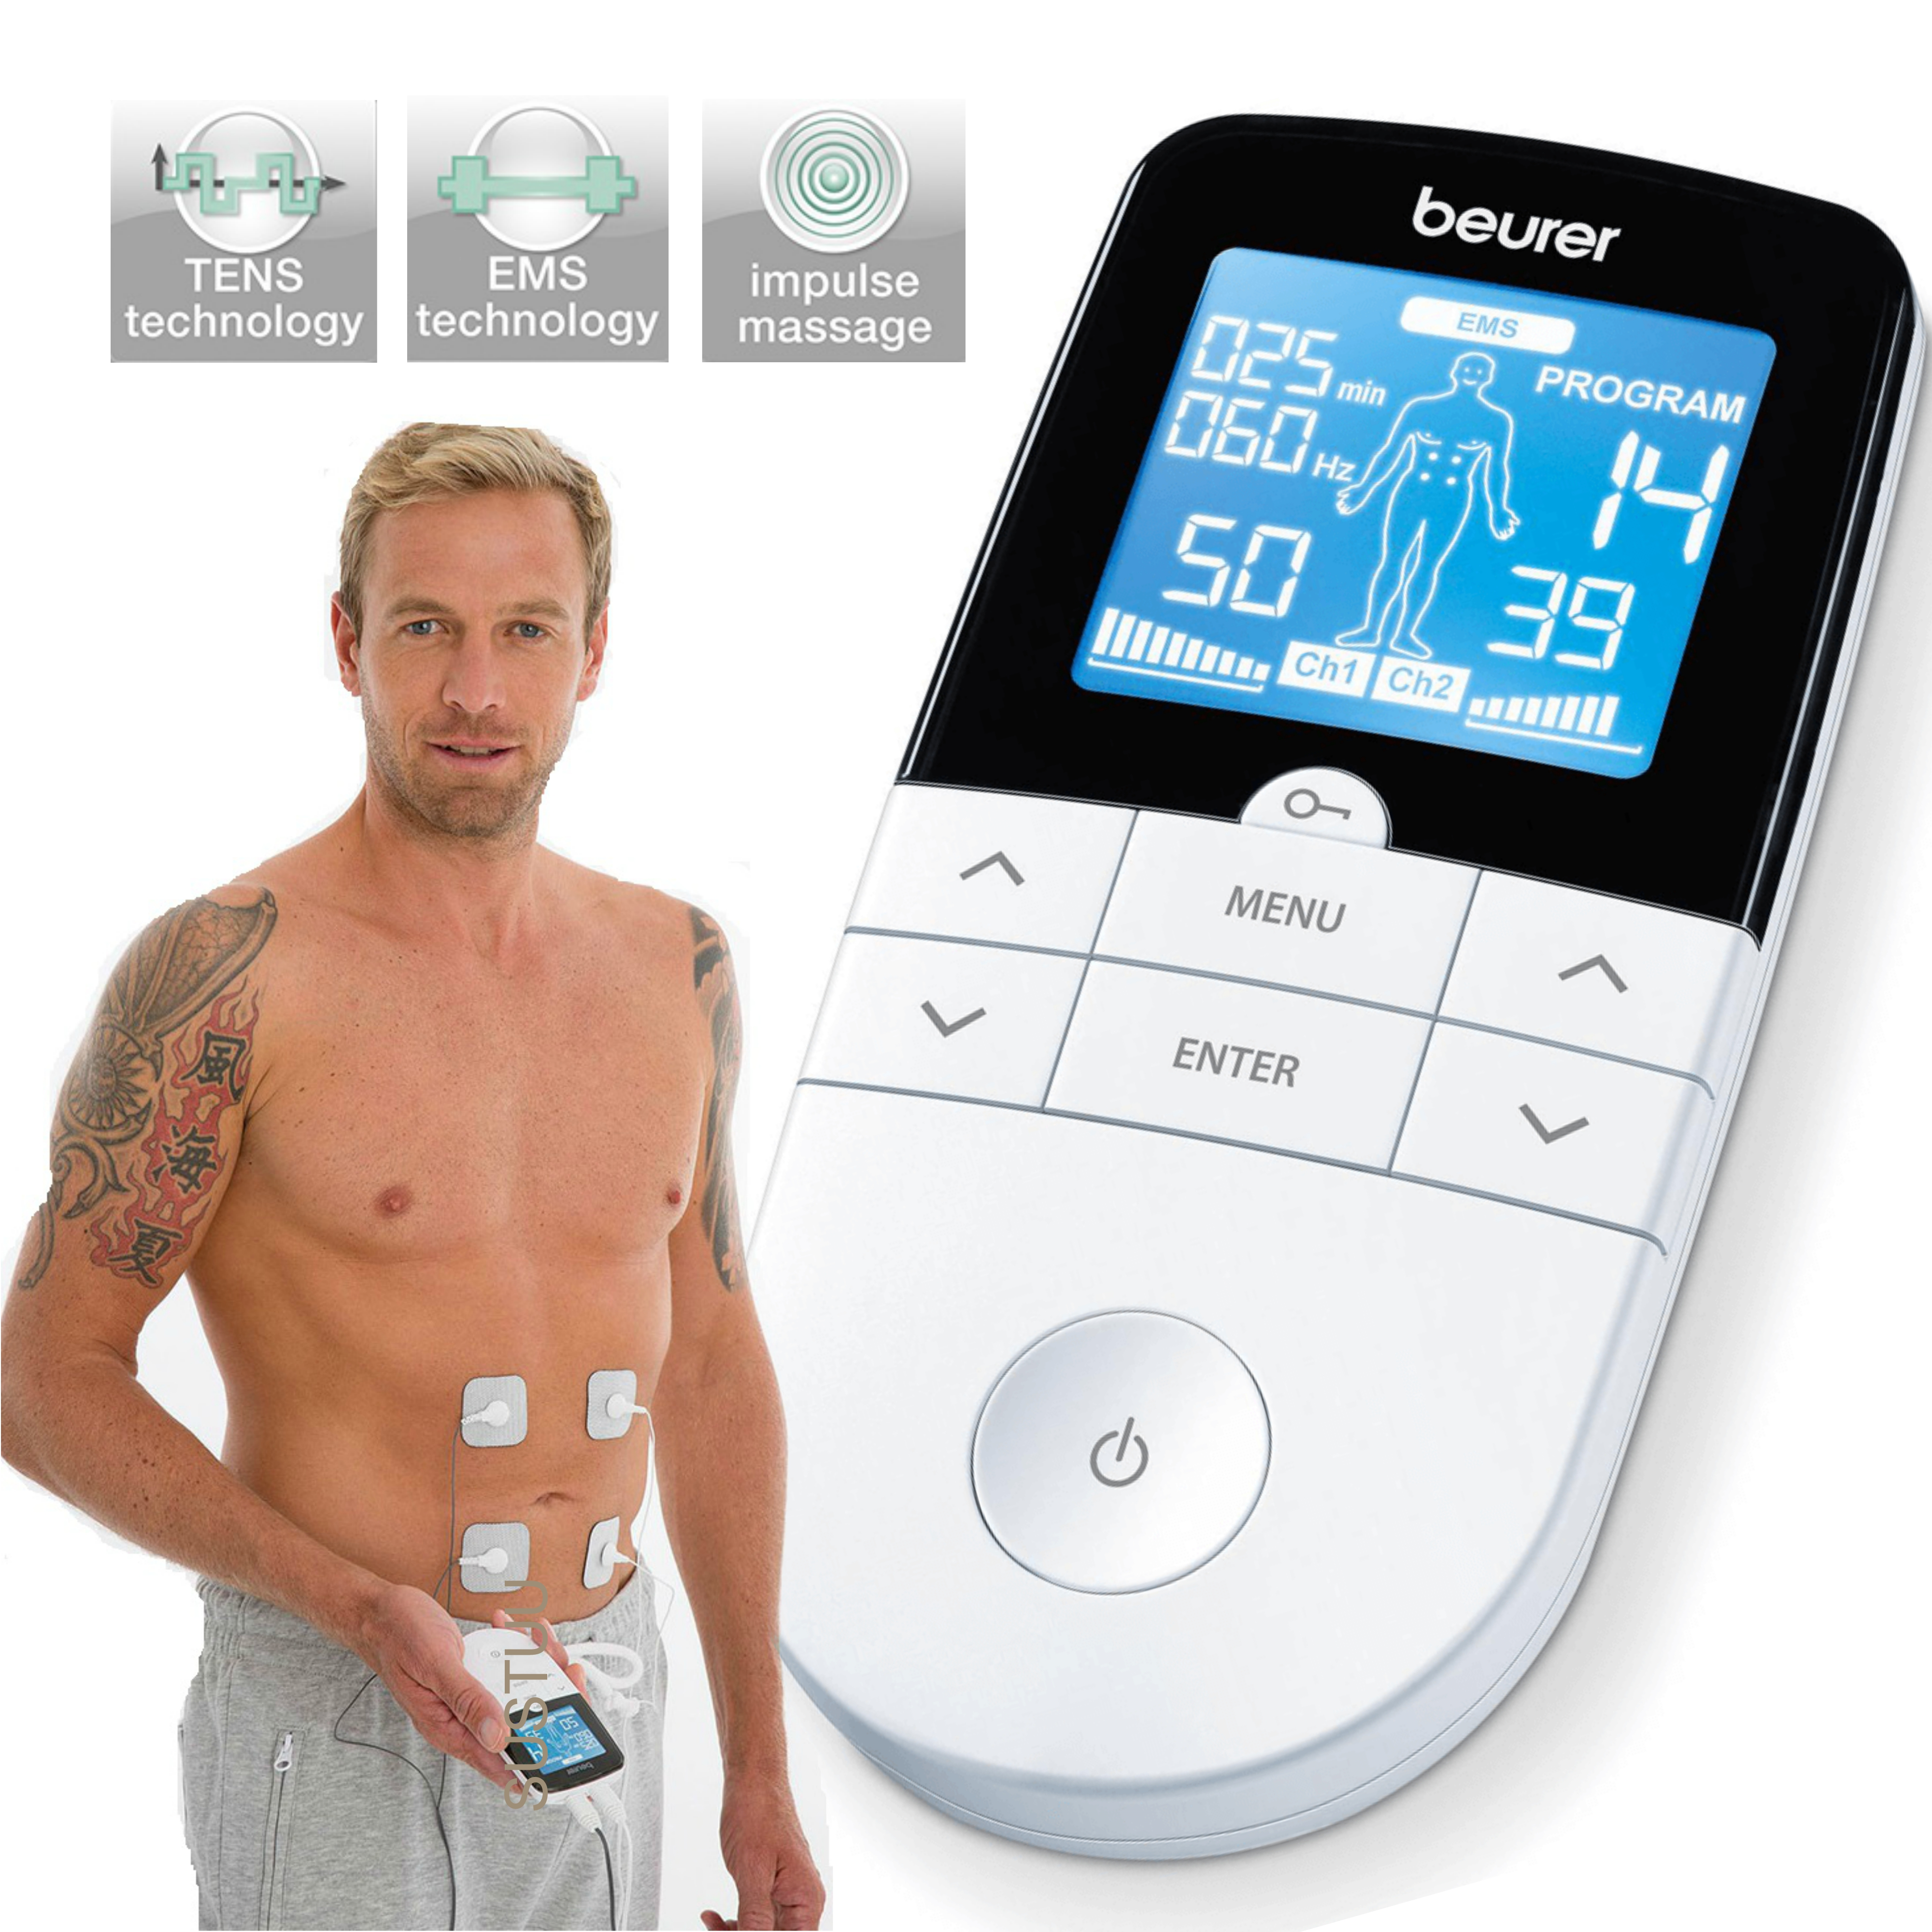 Beurer EM49 Digital Pain Relief Machine|3 in 1 Pain Therapy|TENS|EMS|MASSAGE|New